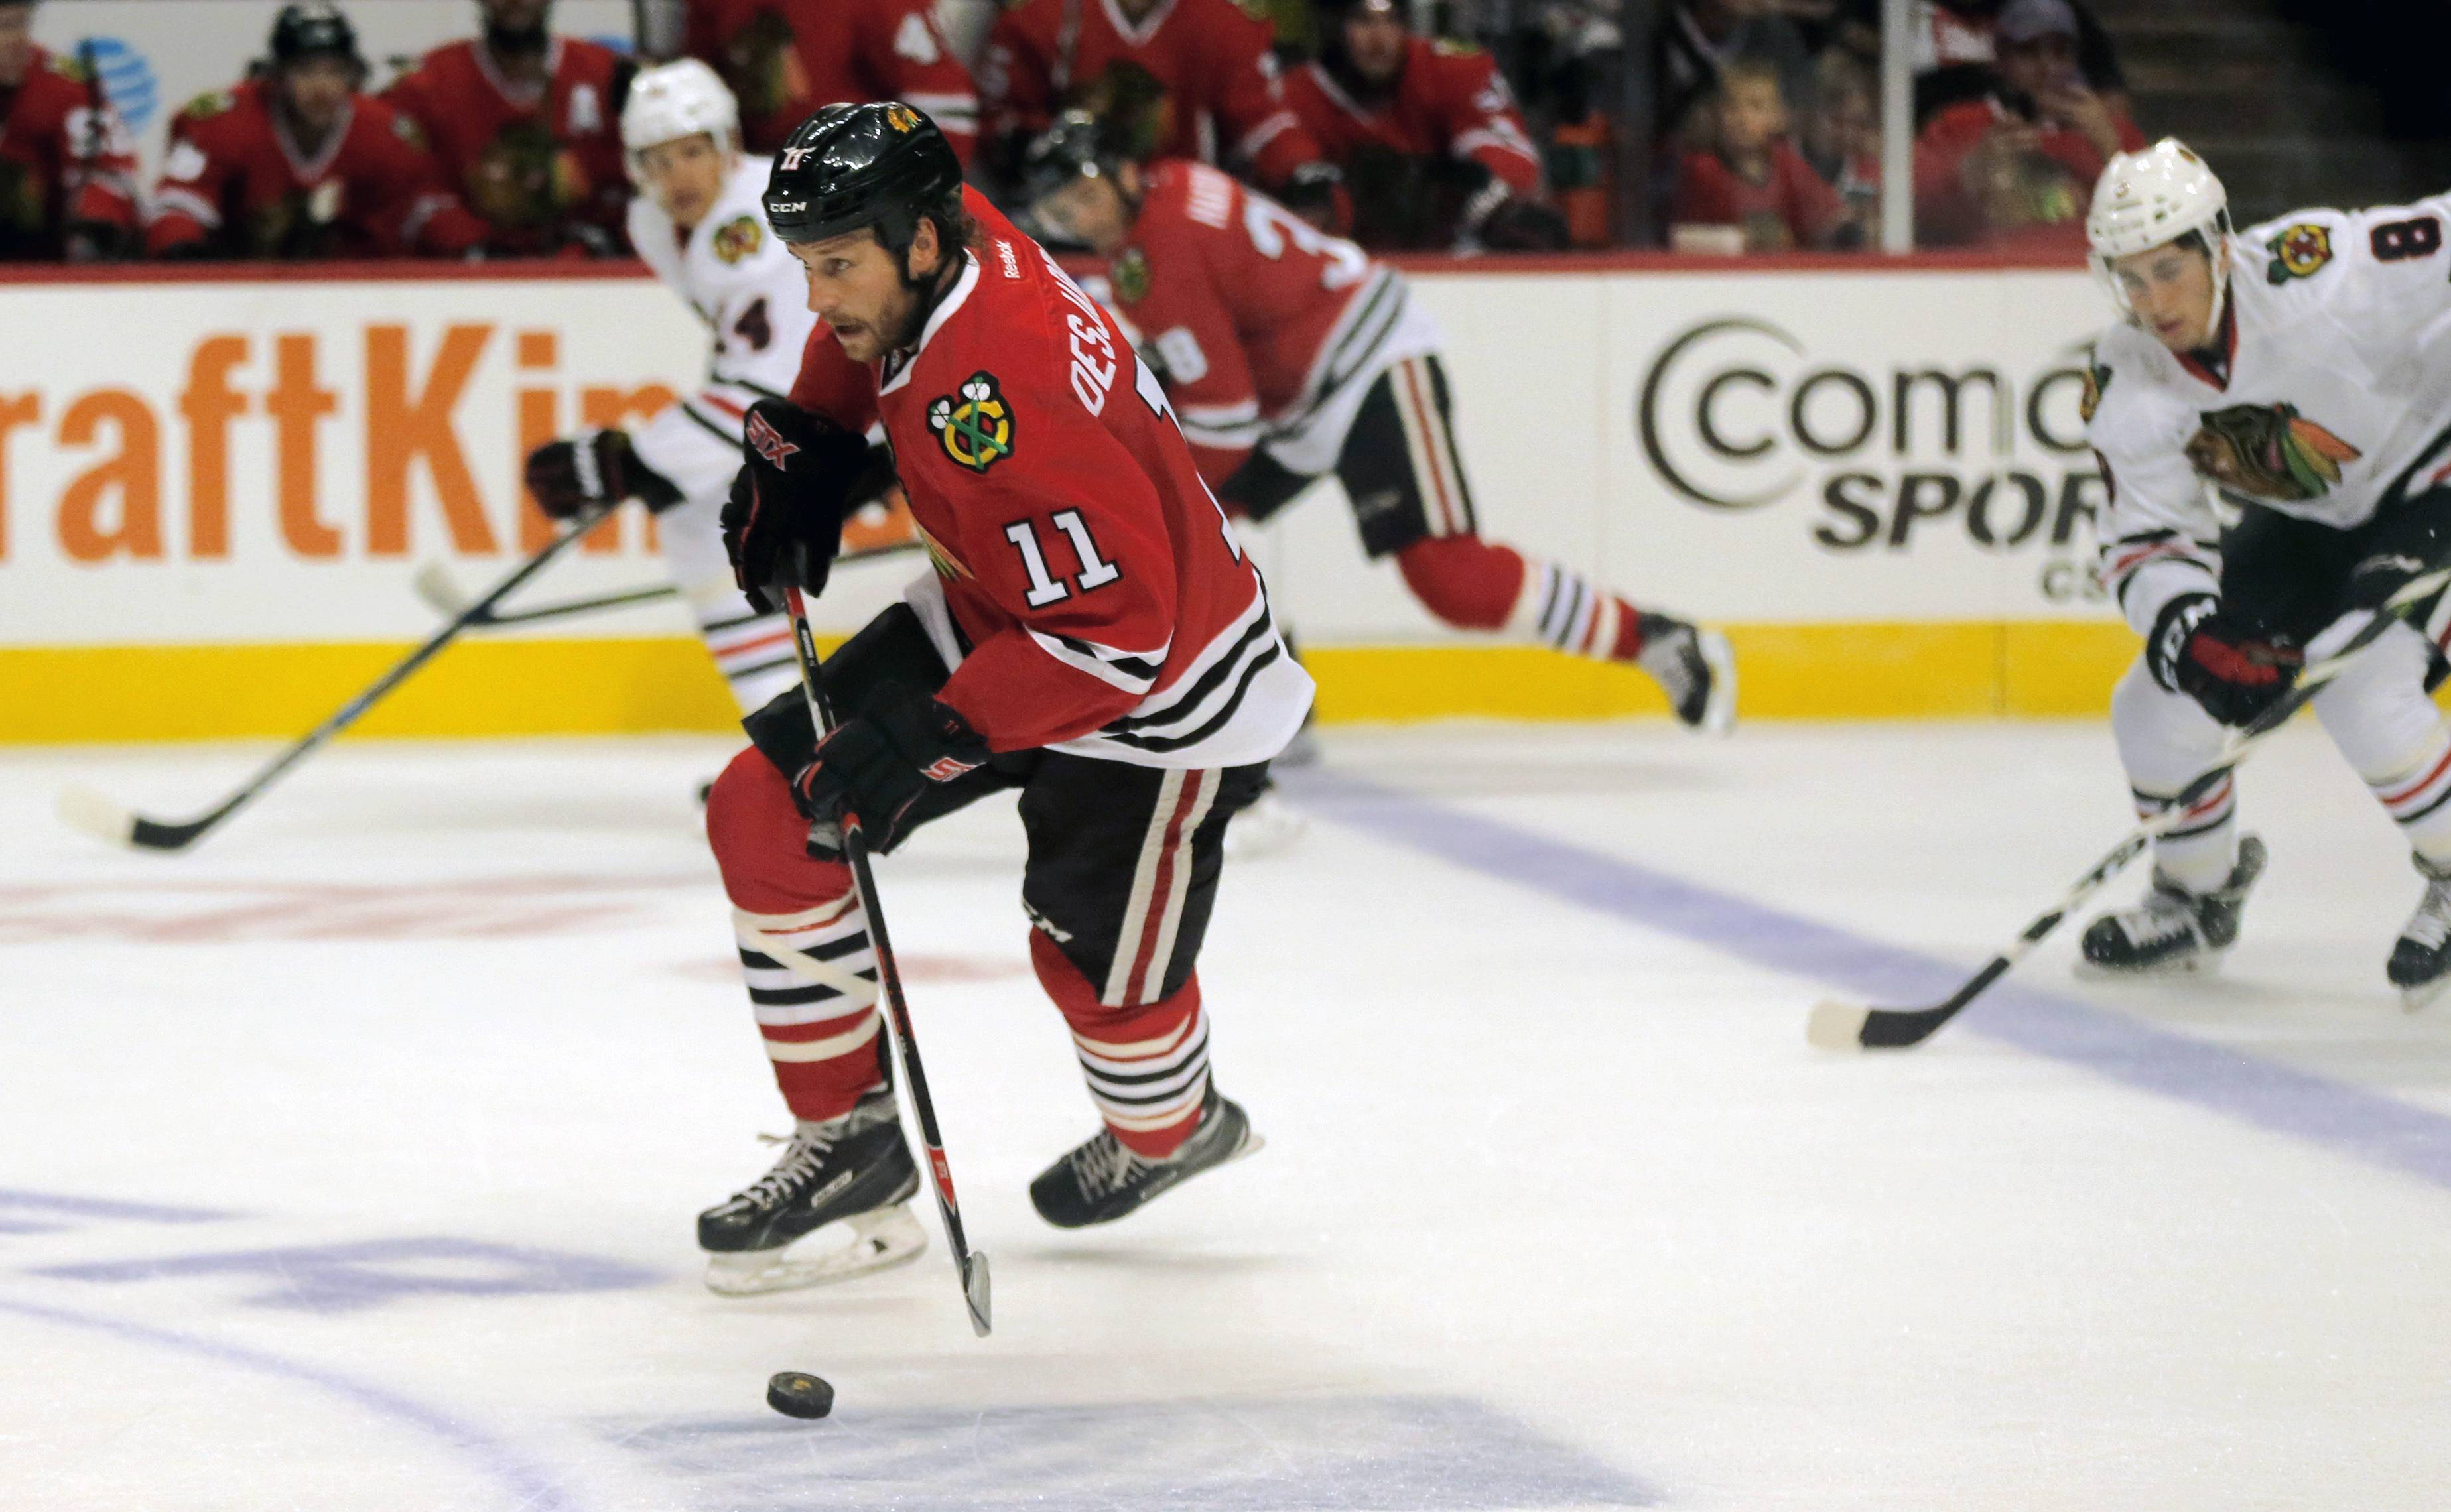 Chicago Blackhawks' Andrew Desjardins (11) controls the puck in the first period during the Chicago Blackhawks Training Camp Fest hockey scrimmage at the United Center Saturday, Sept. 24, 2016, in Chicago. (AP Photo/Tae-Gyun Kim)